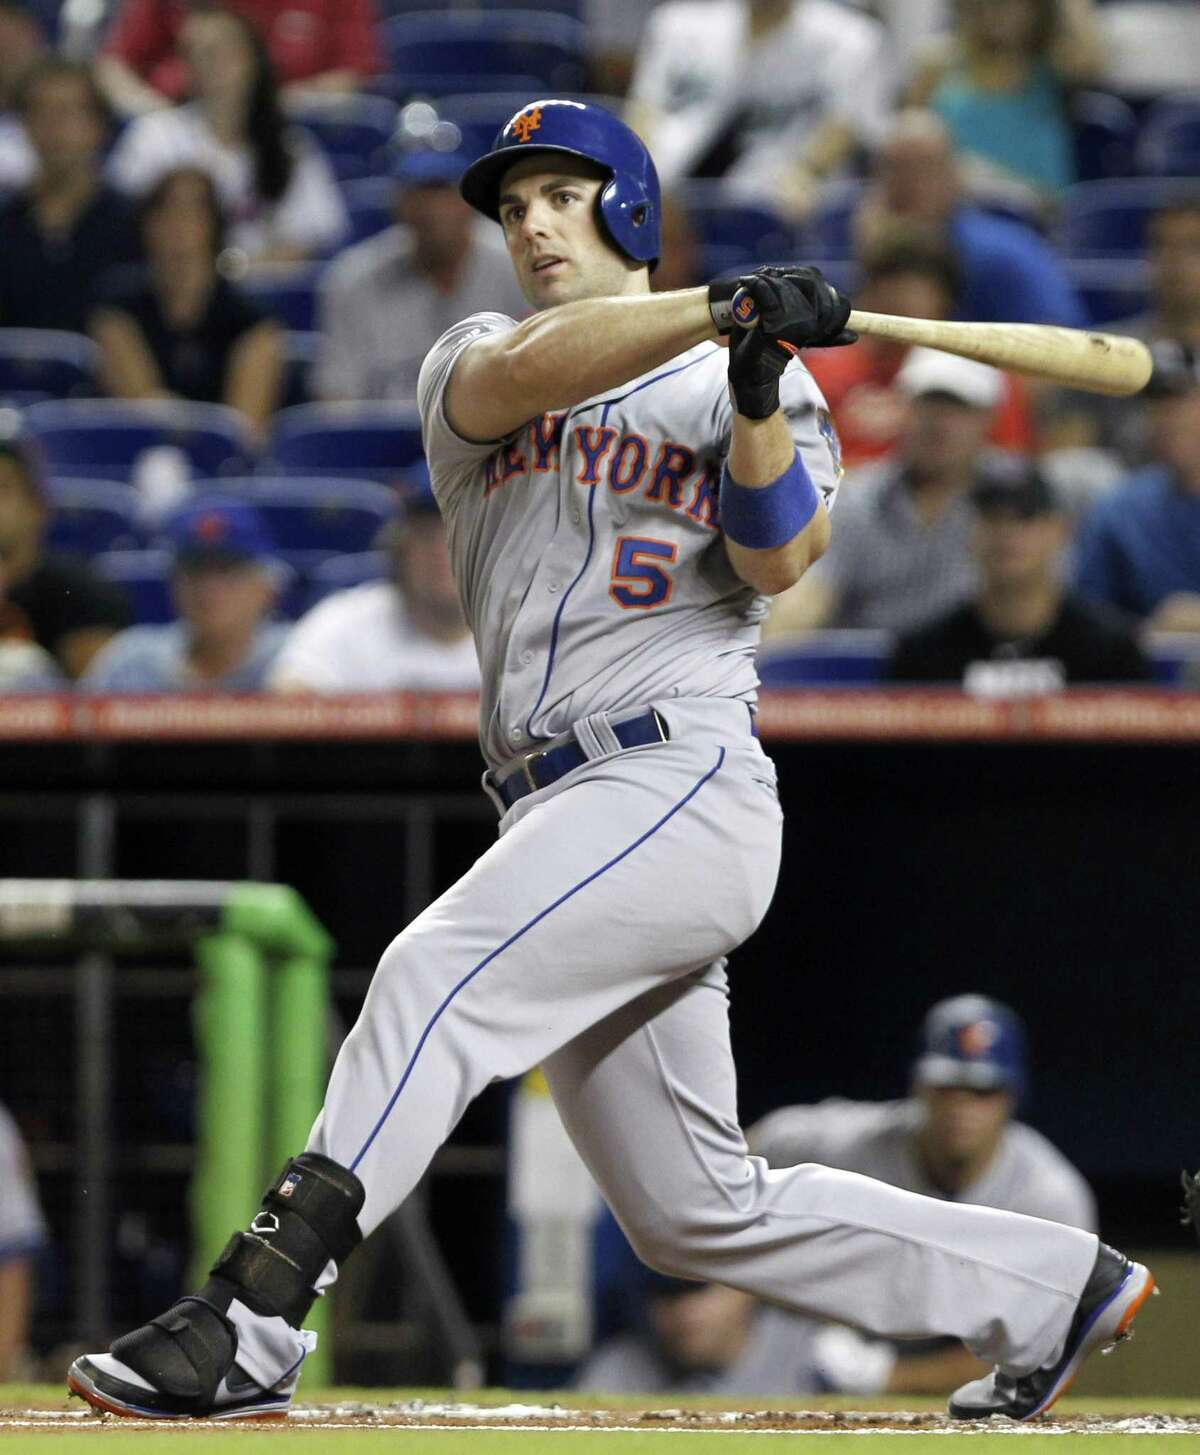 FILE - In this Oct. 2, 2012 file photo, New York Mets' David Wright follows through against the Miami Marlins during a baseball game in Miami. WFAN radio is reporting Friday, Nov. 30, 2012, that Wright and the New York Mets have agreed to a $138 million, eight-year contract that would be the richest in franchise history. (AP Photo/Alan Diaz, File)